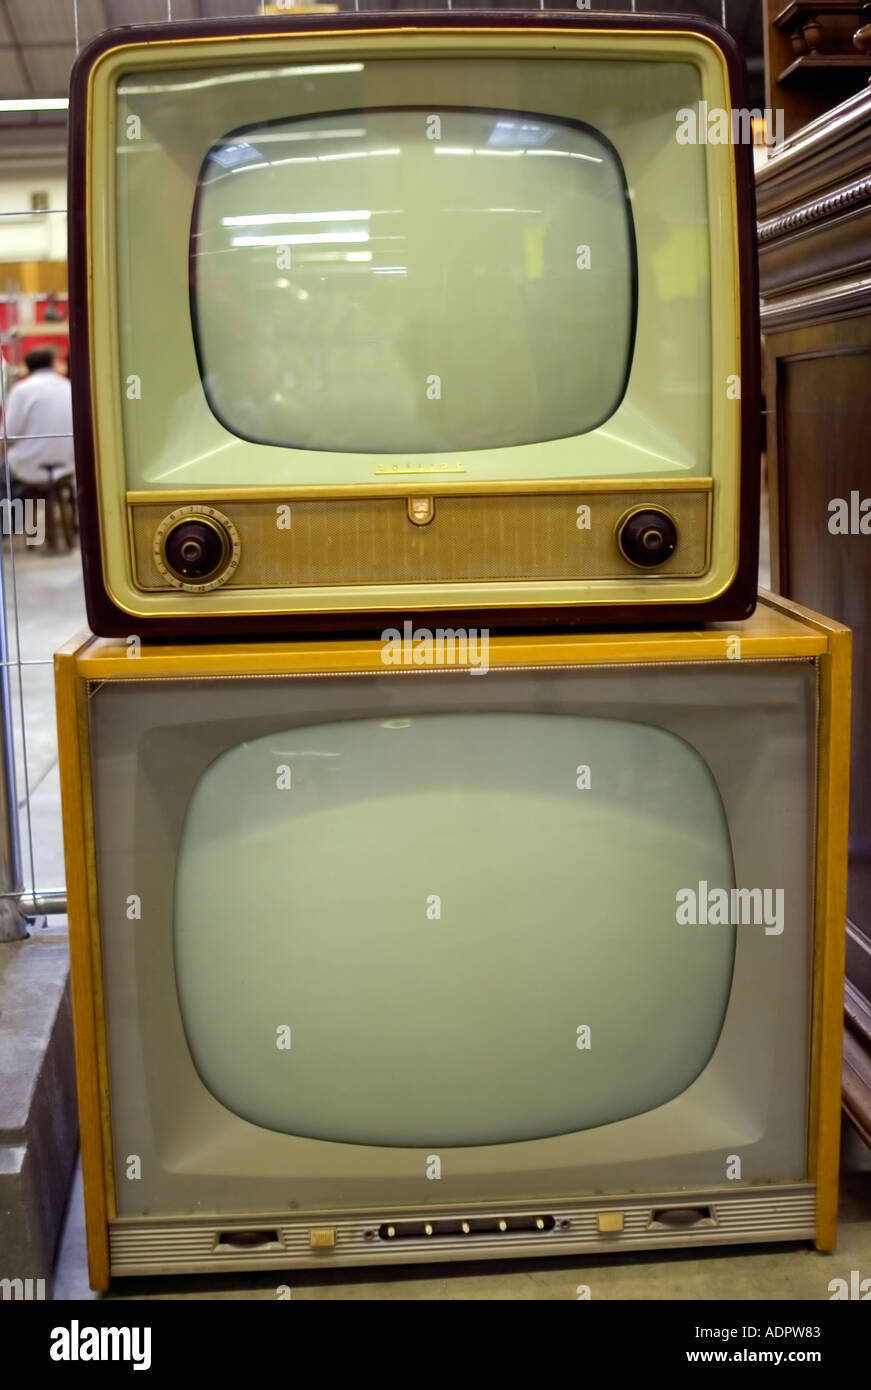 old 1960s french  u0026quot television sets u0026quot  for sale at  u0026quot flea